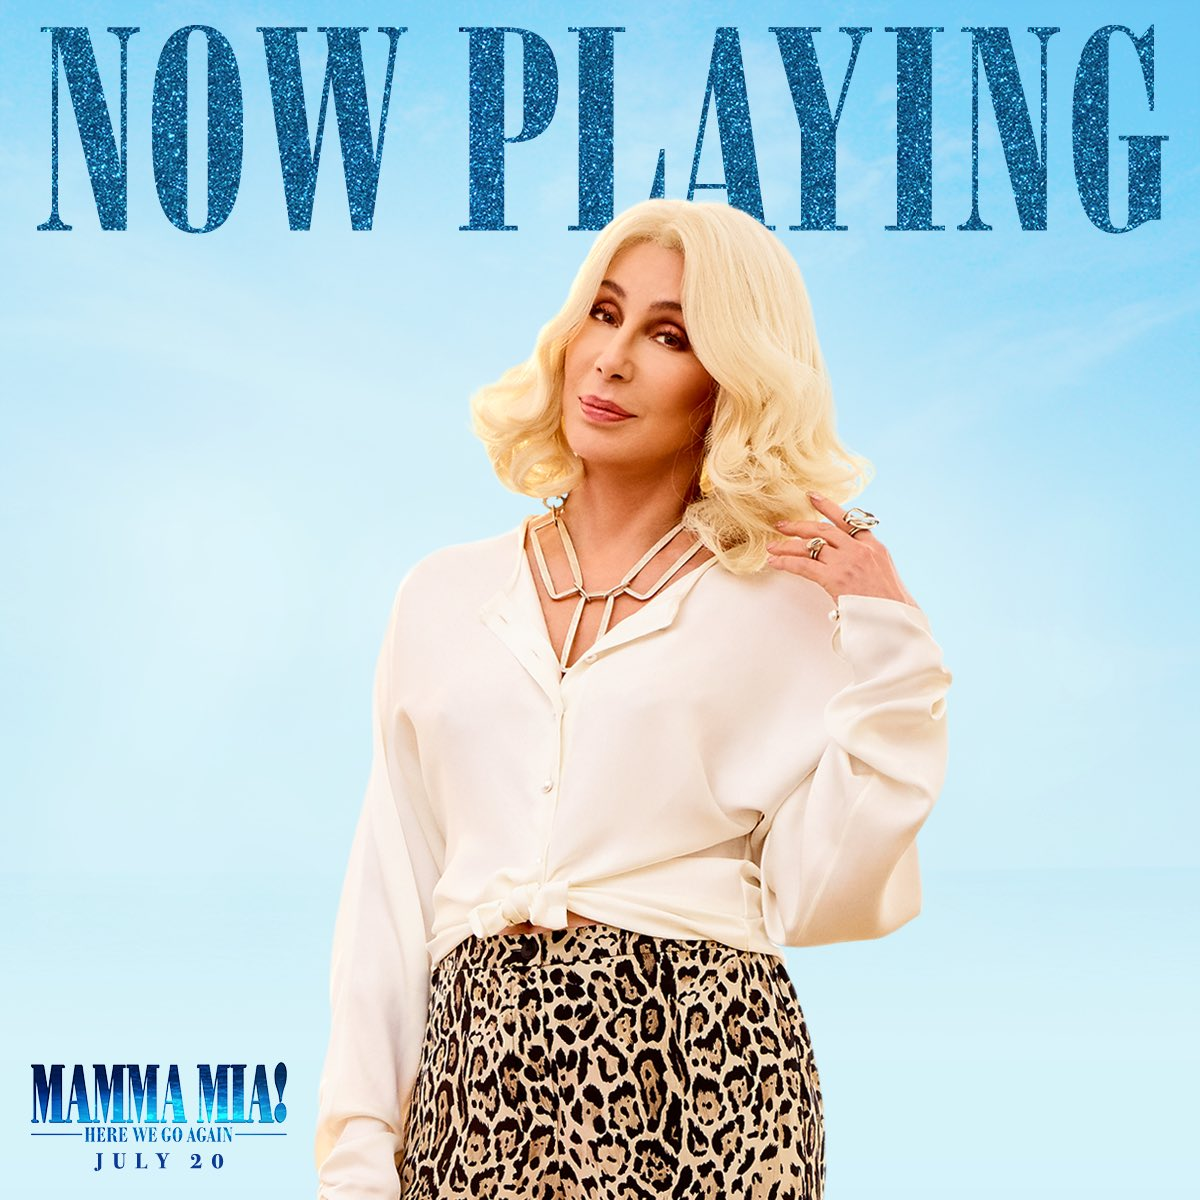 You've got glitter in your veins! #MammaMia2 is now playing! Get tickets now ???? https://t.co/S3pY1V1uU4 https://t.co/TFXf5uhQTm